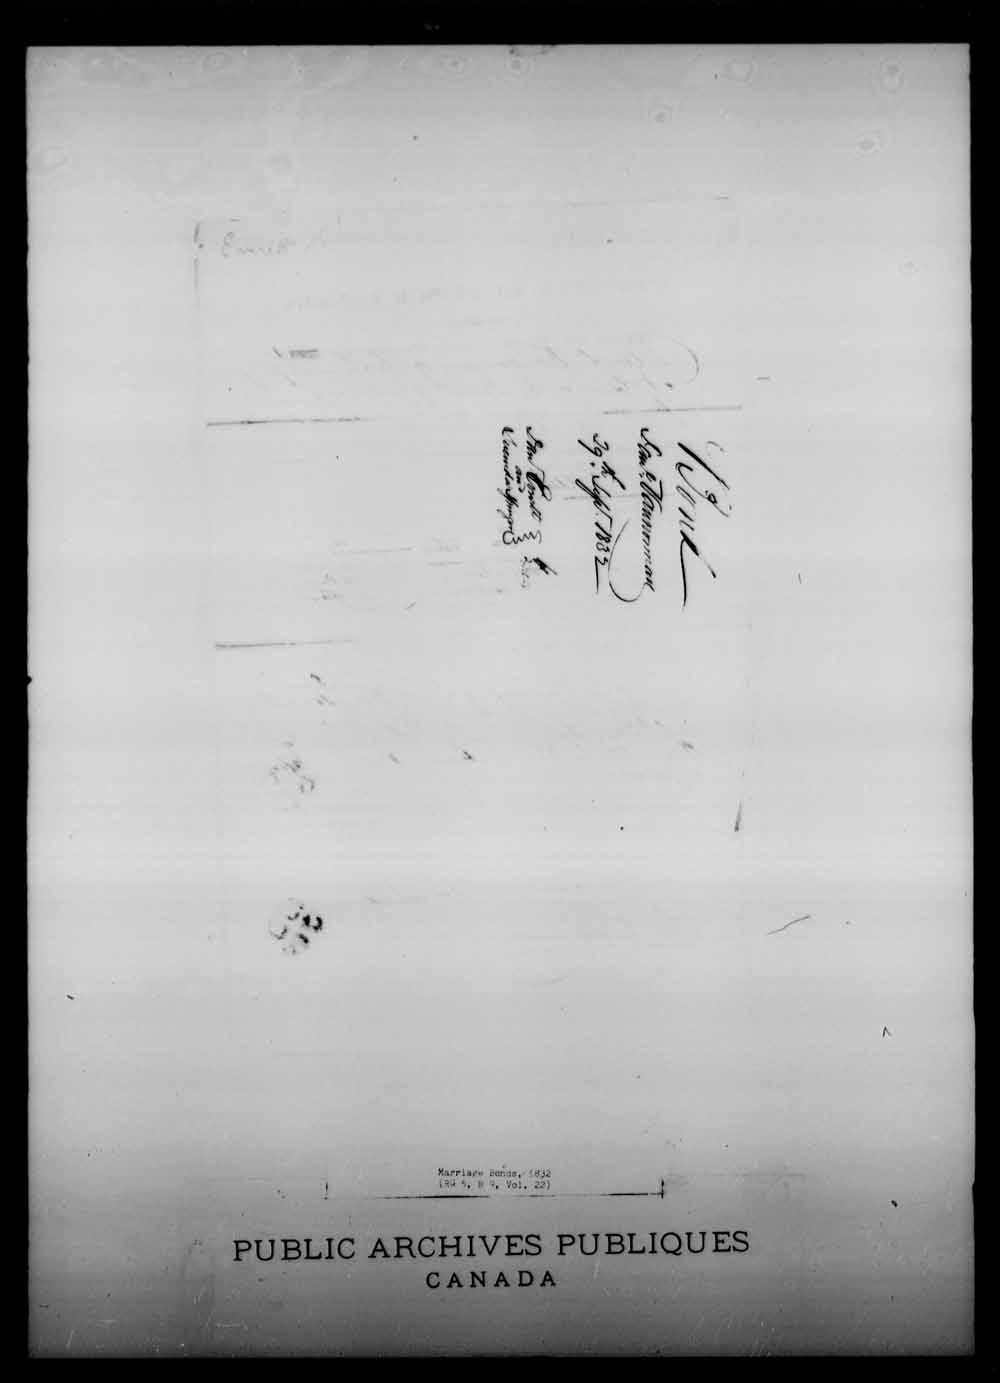 Digitized page of Upper and Lower Canada Marriage Bonds (1779-1865) for Image No.: e008217953